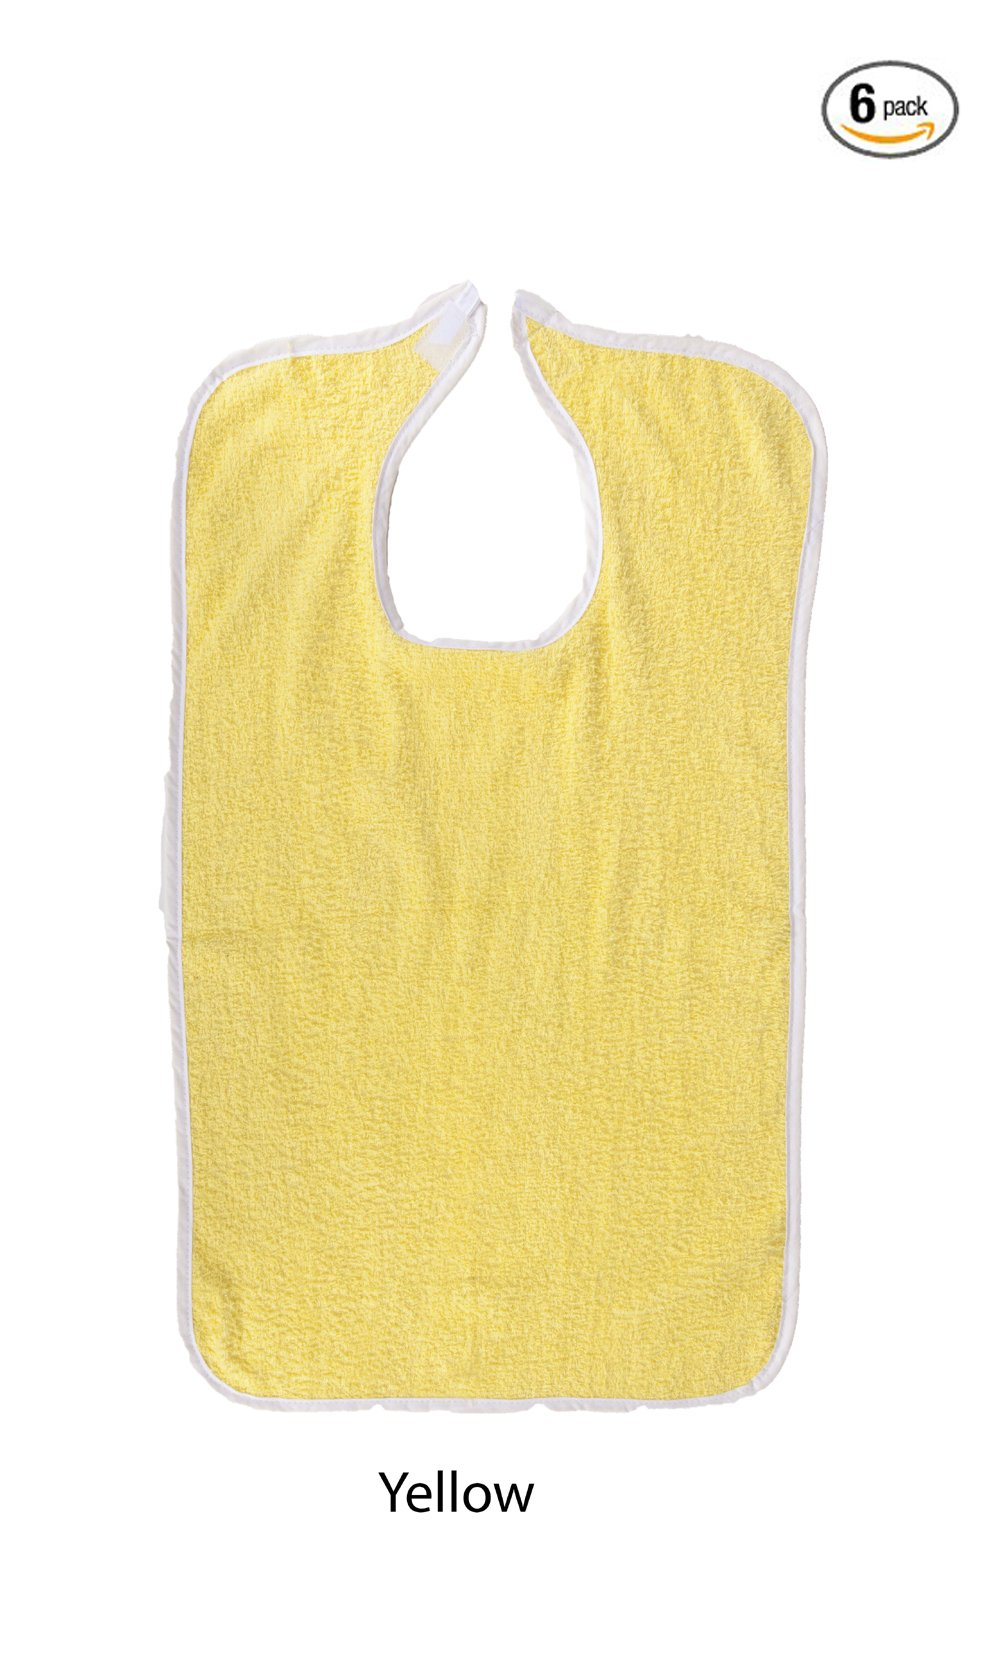 Adult Terry Cloth Bib With Velcro Closure Size 18 X 30 - 6 Pack (Yellow)